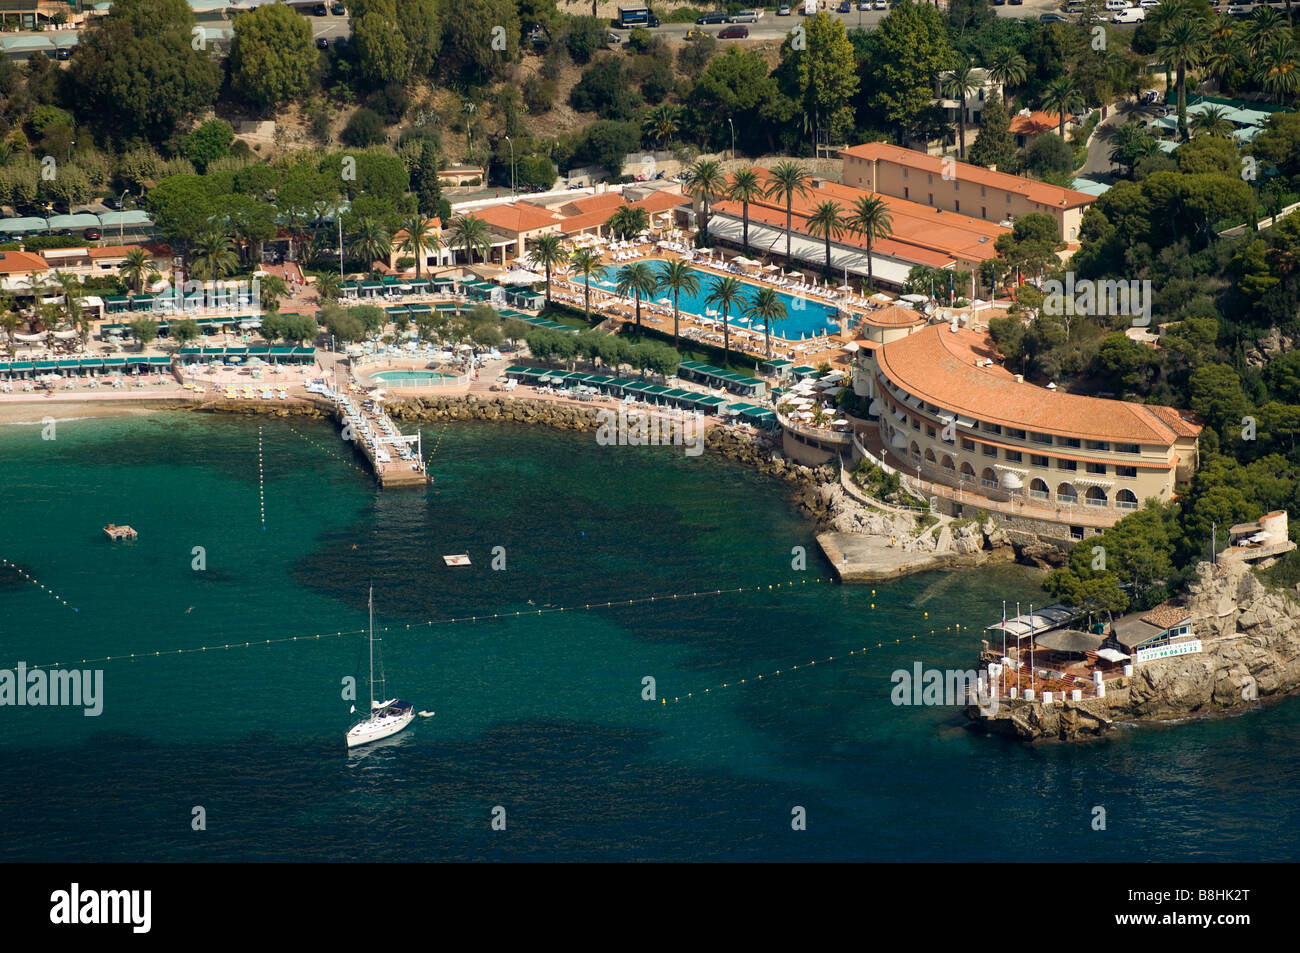 Montecarlo Beach Club View From Helicopter Cote D Azur Monaco Stock Photo Alamy